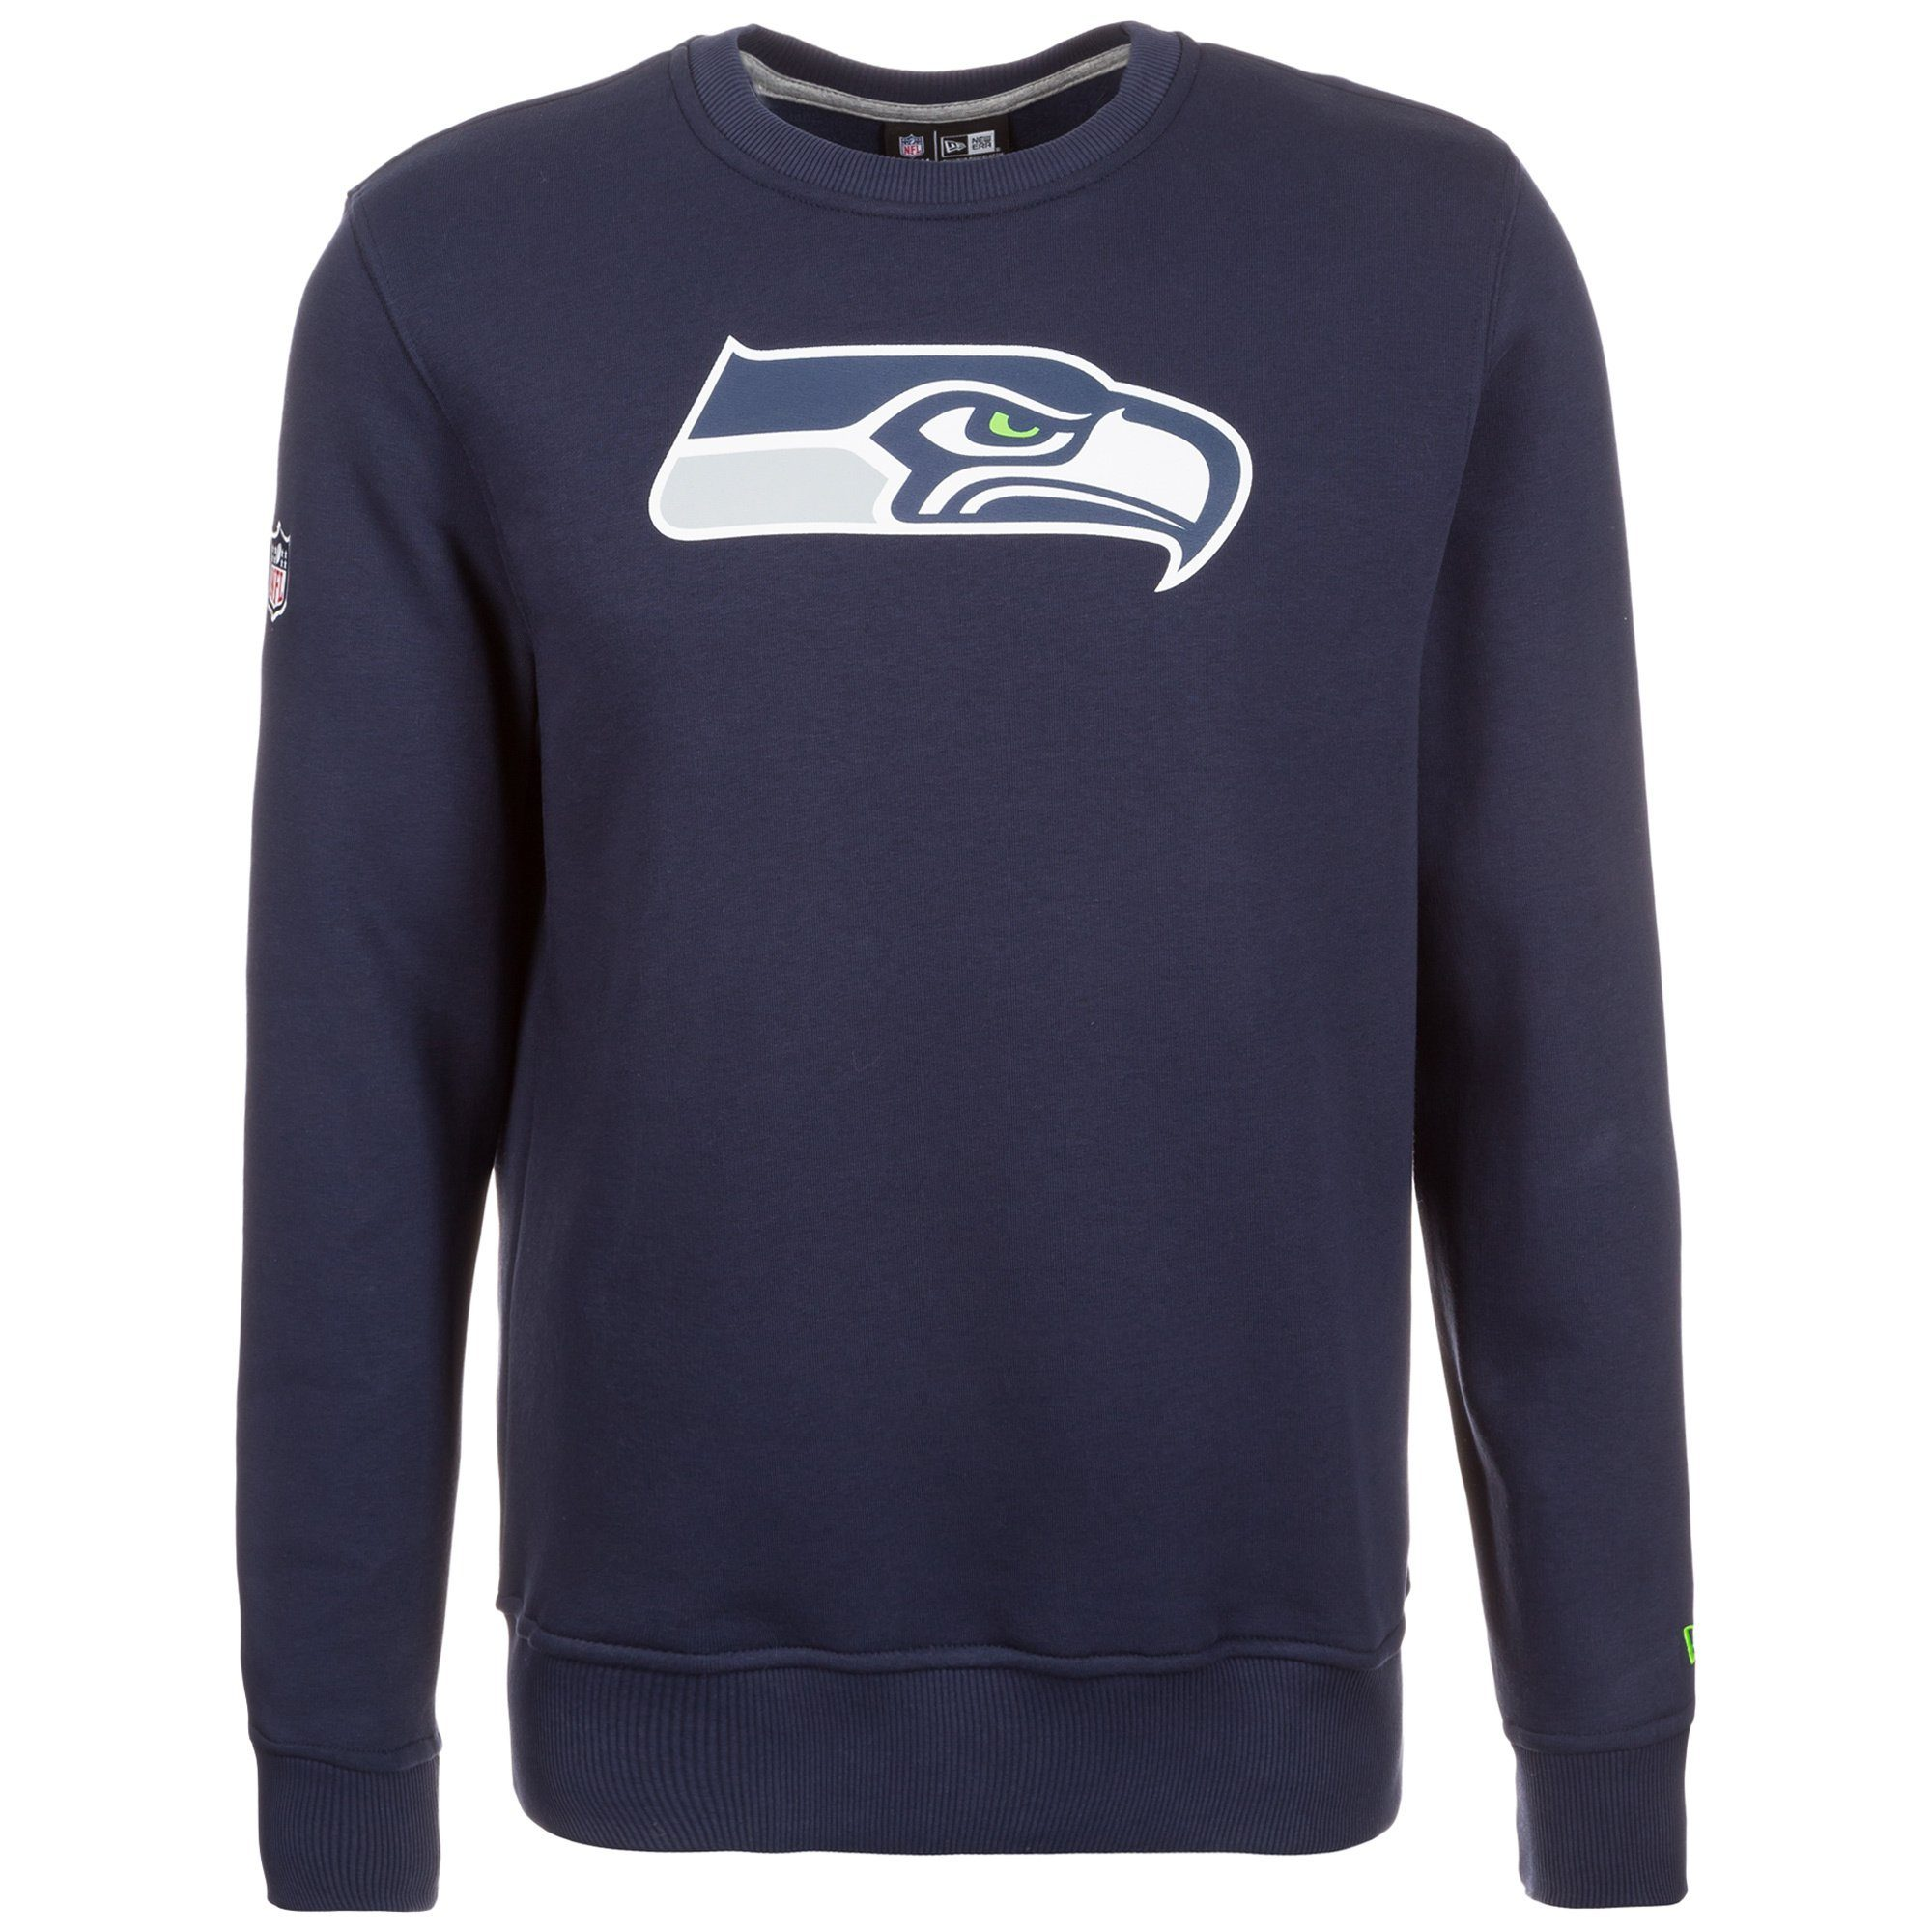 Design Möbel Online Kaufen New Era Nfl Team Logo Seattle Seahawks Sweatshirt Herren